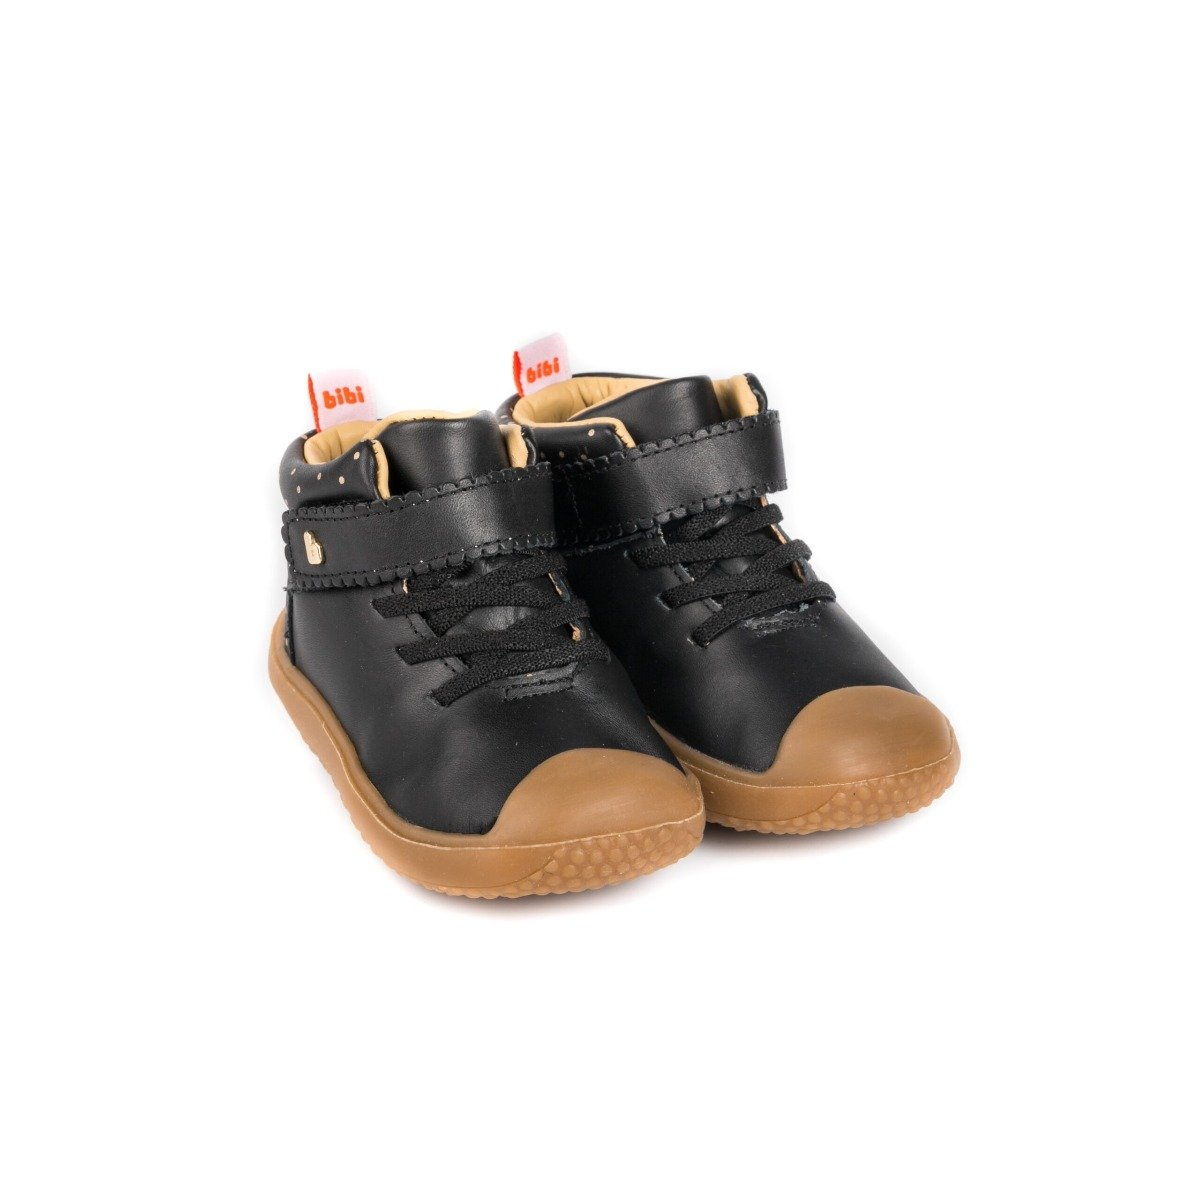 Ghete Bibi Shoes Prewalker, Negru